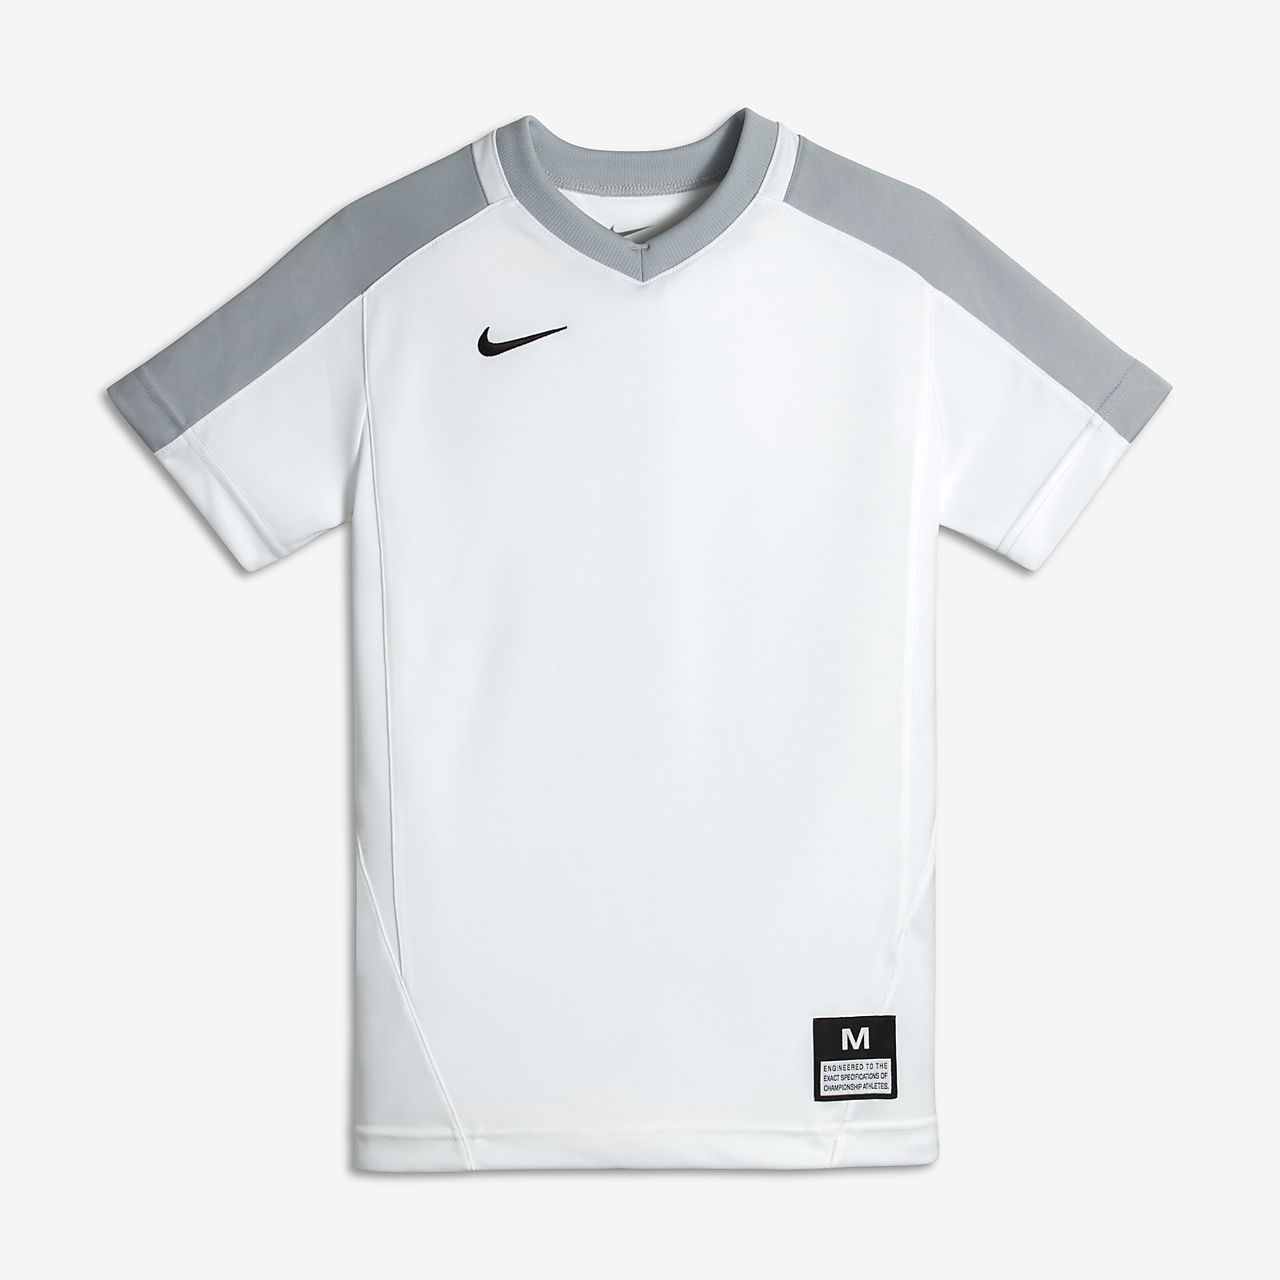 Nike Vapor Dri-FIT Big Kids' (Boys') Baseball Jersey